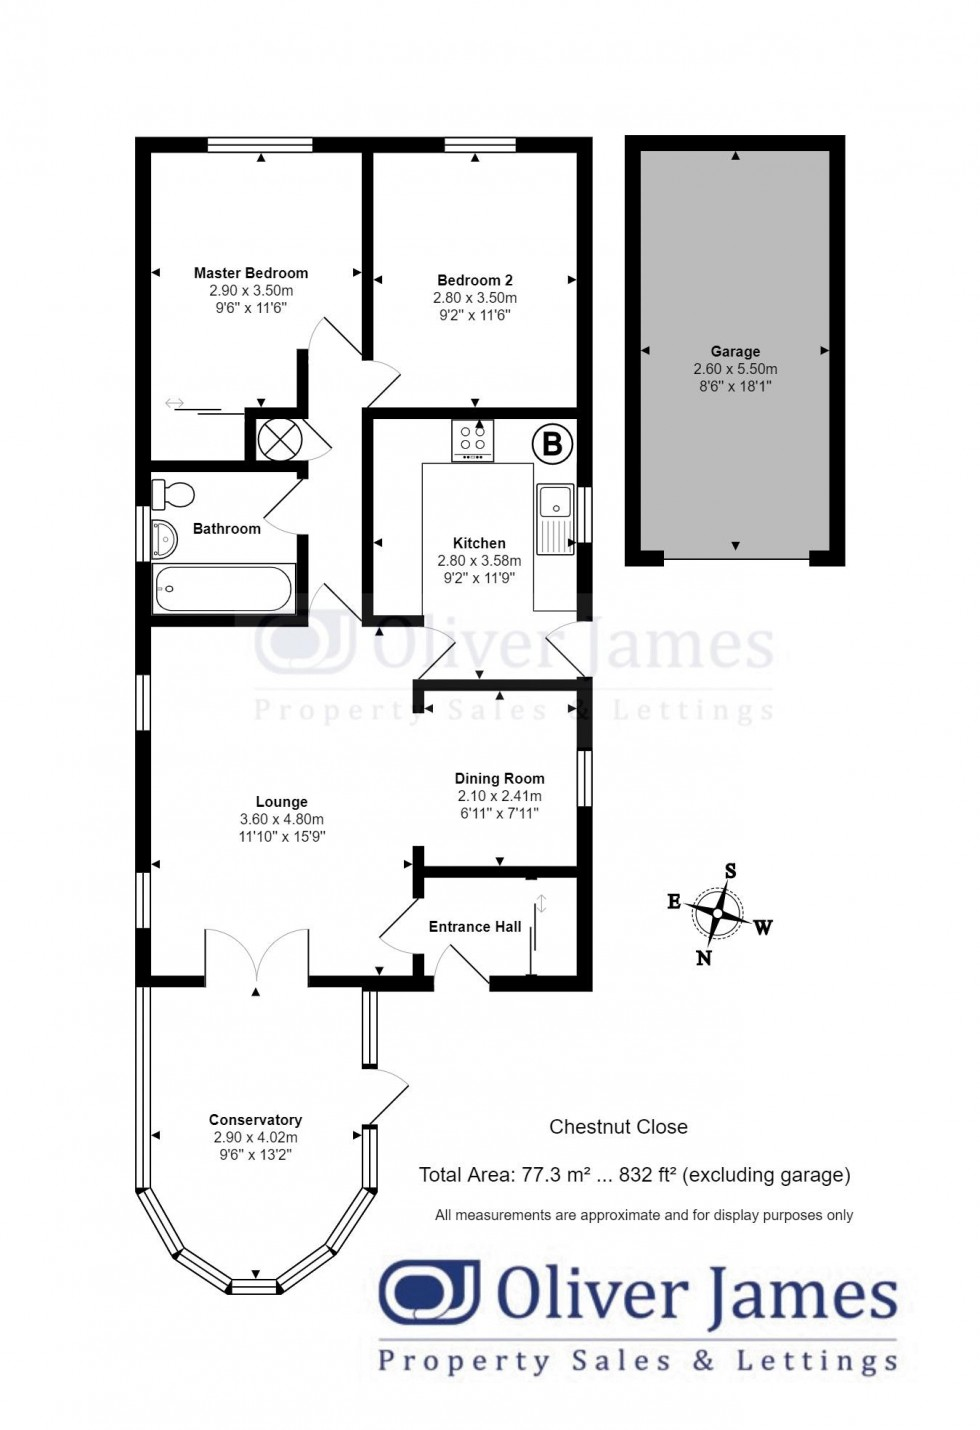 Floorplan for Chestnut Close, Sawtry, Huntingdon.